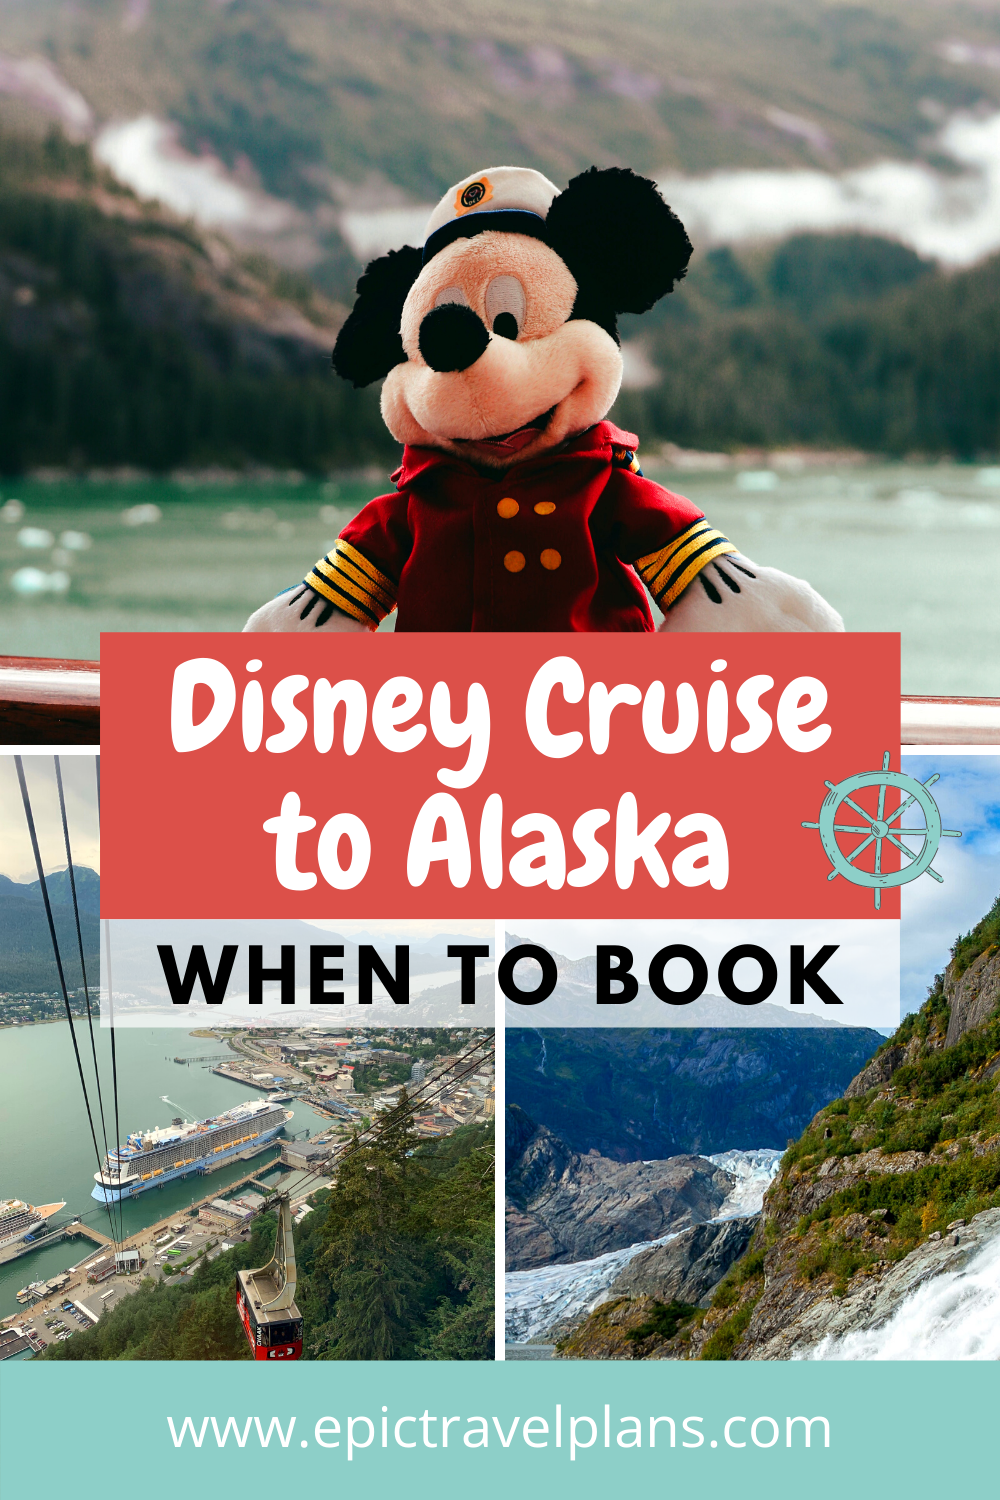 Disney cruise to Alaska, best prices and when to book